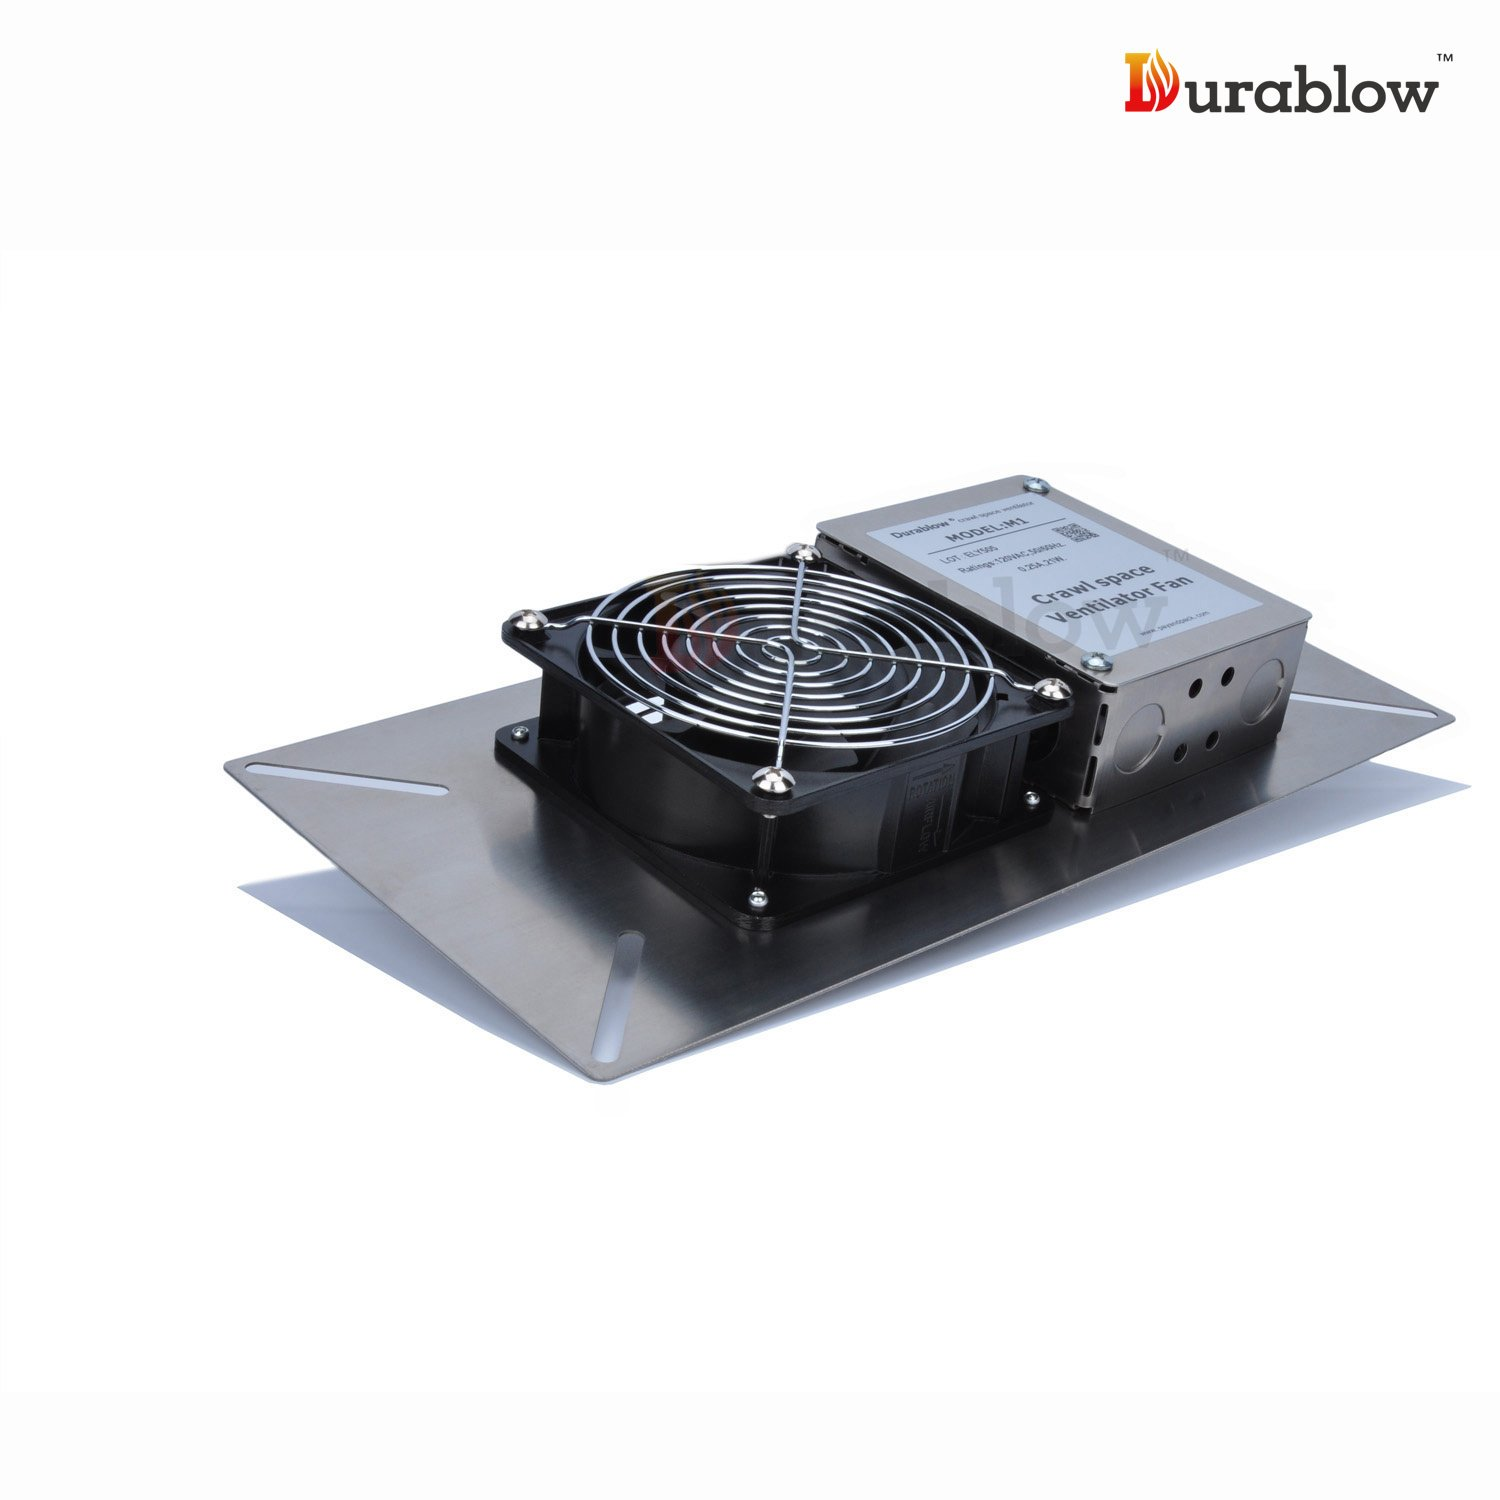 Durablow Stainless Steel 304 Crawl Space Foundation Fan Ventilator MFB M1 by Durablow (Image #2)